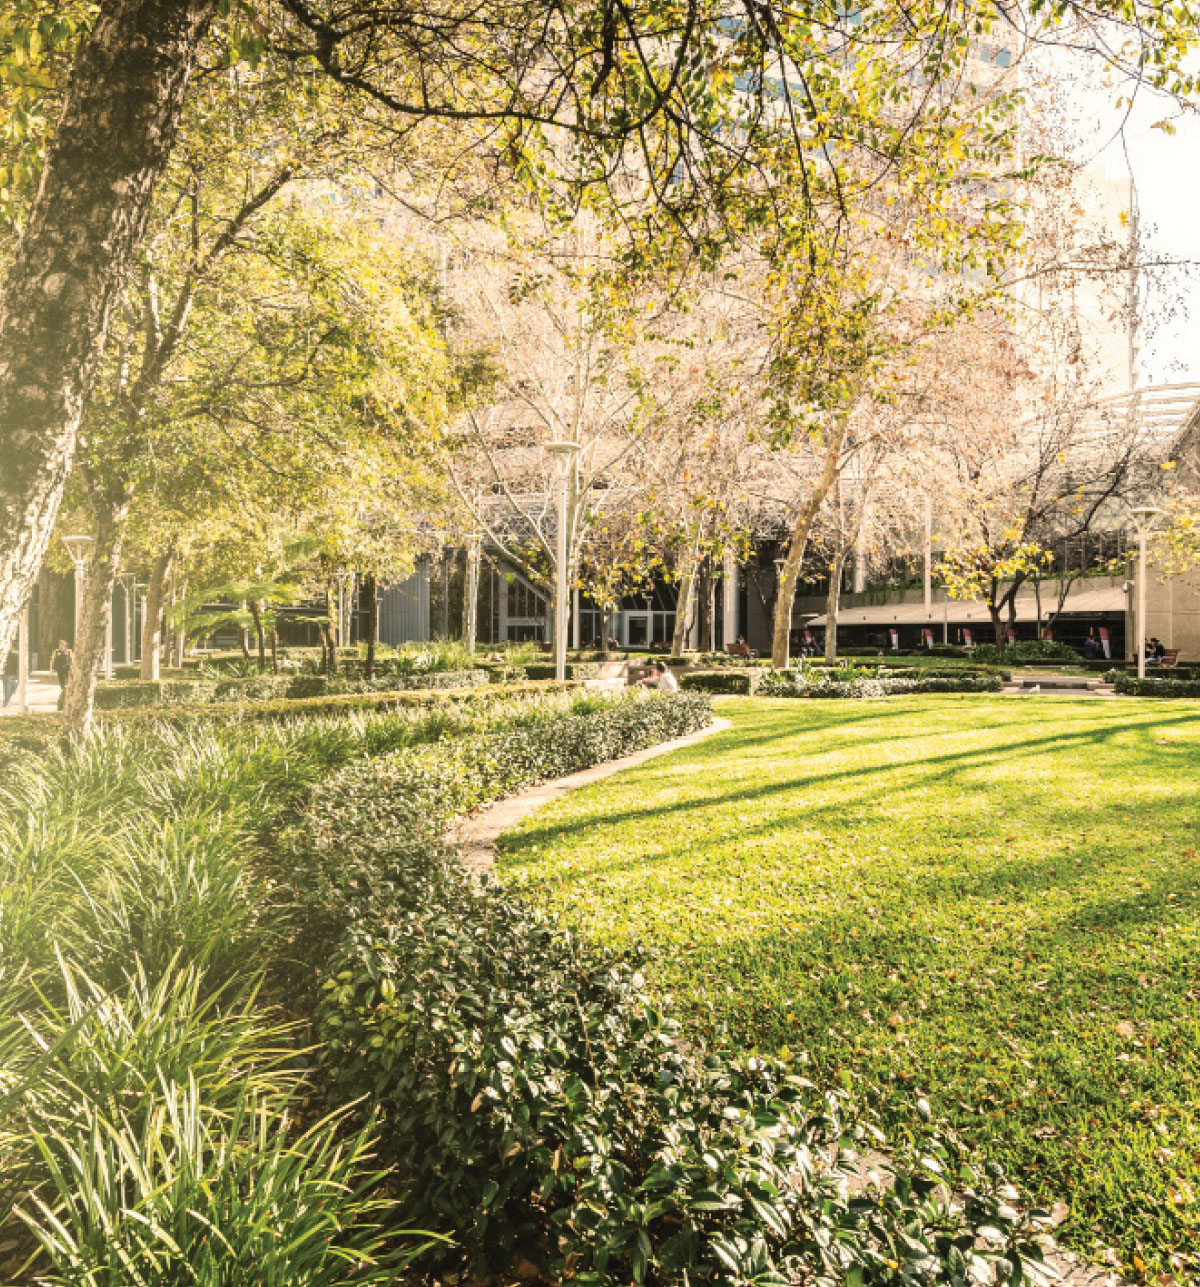 Perth CBD's only green space